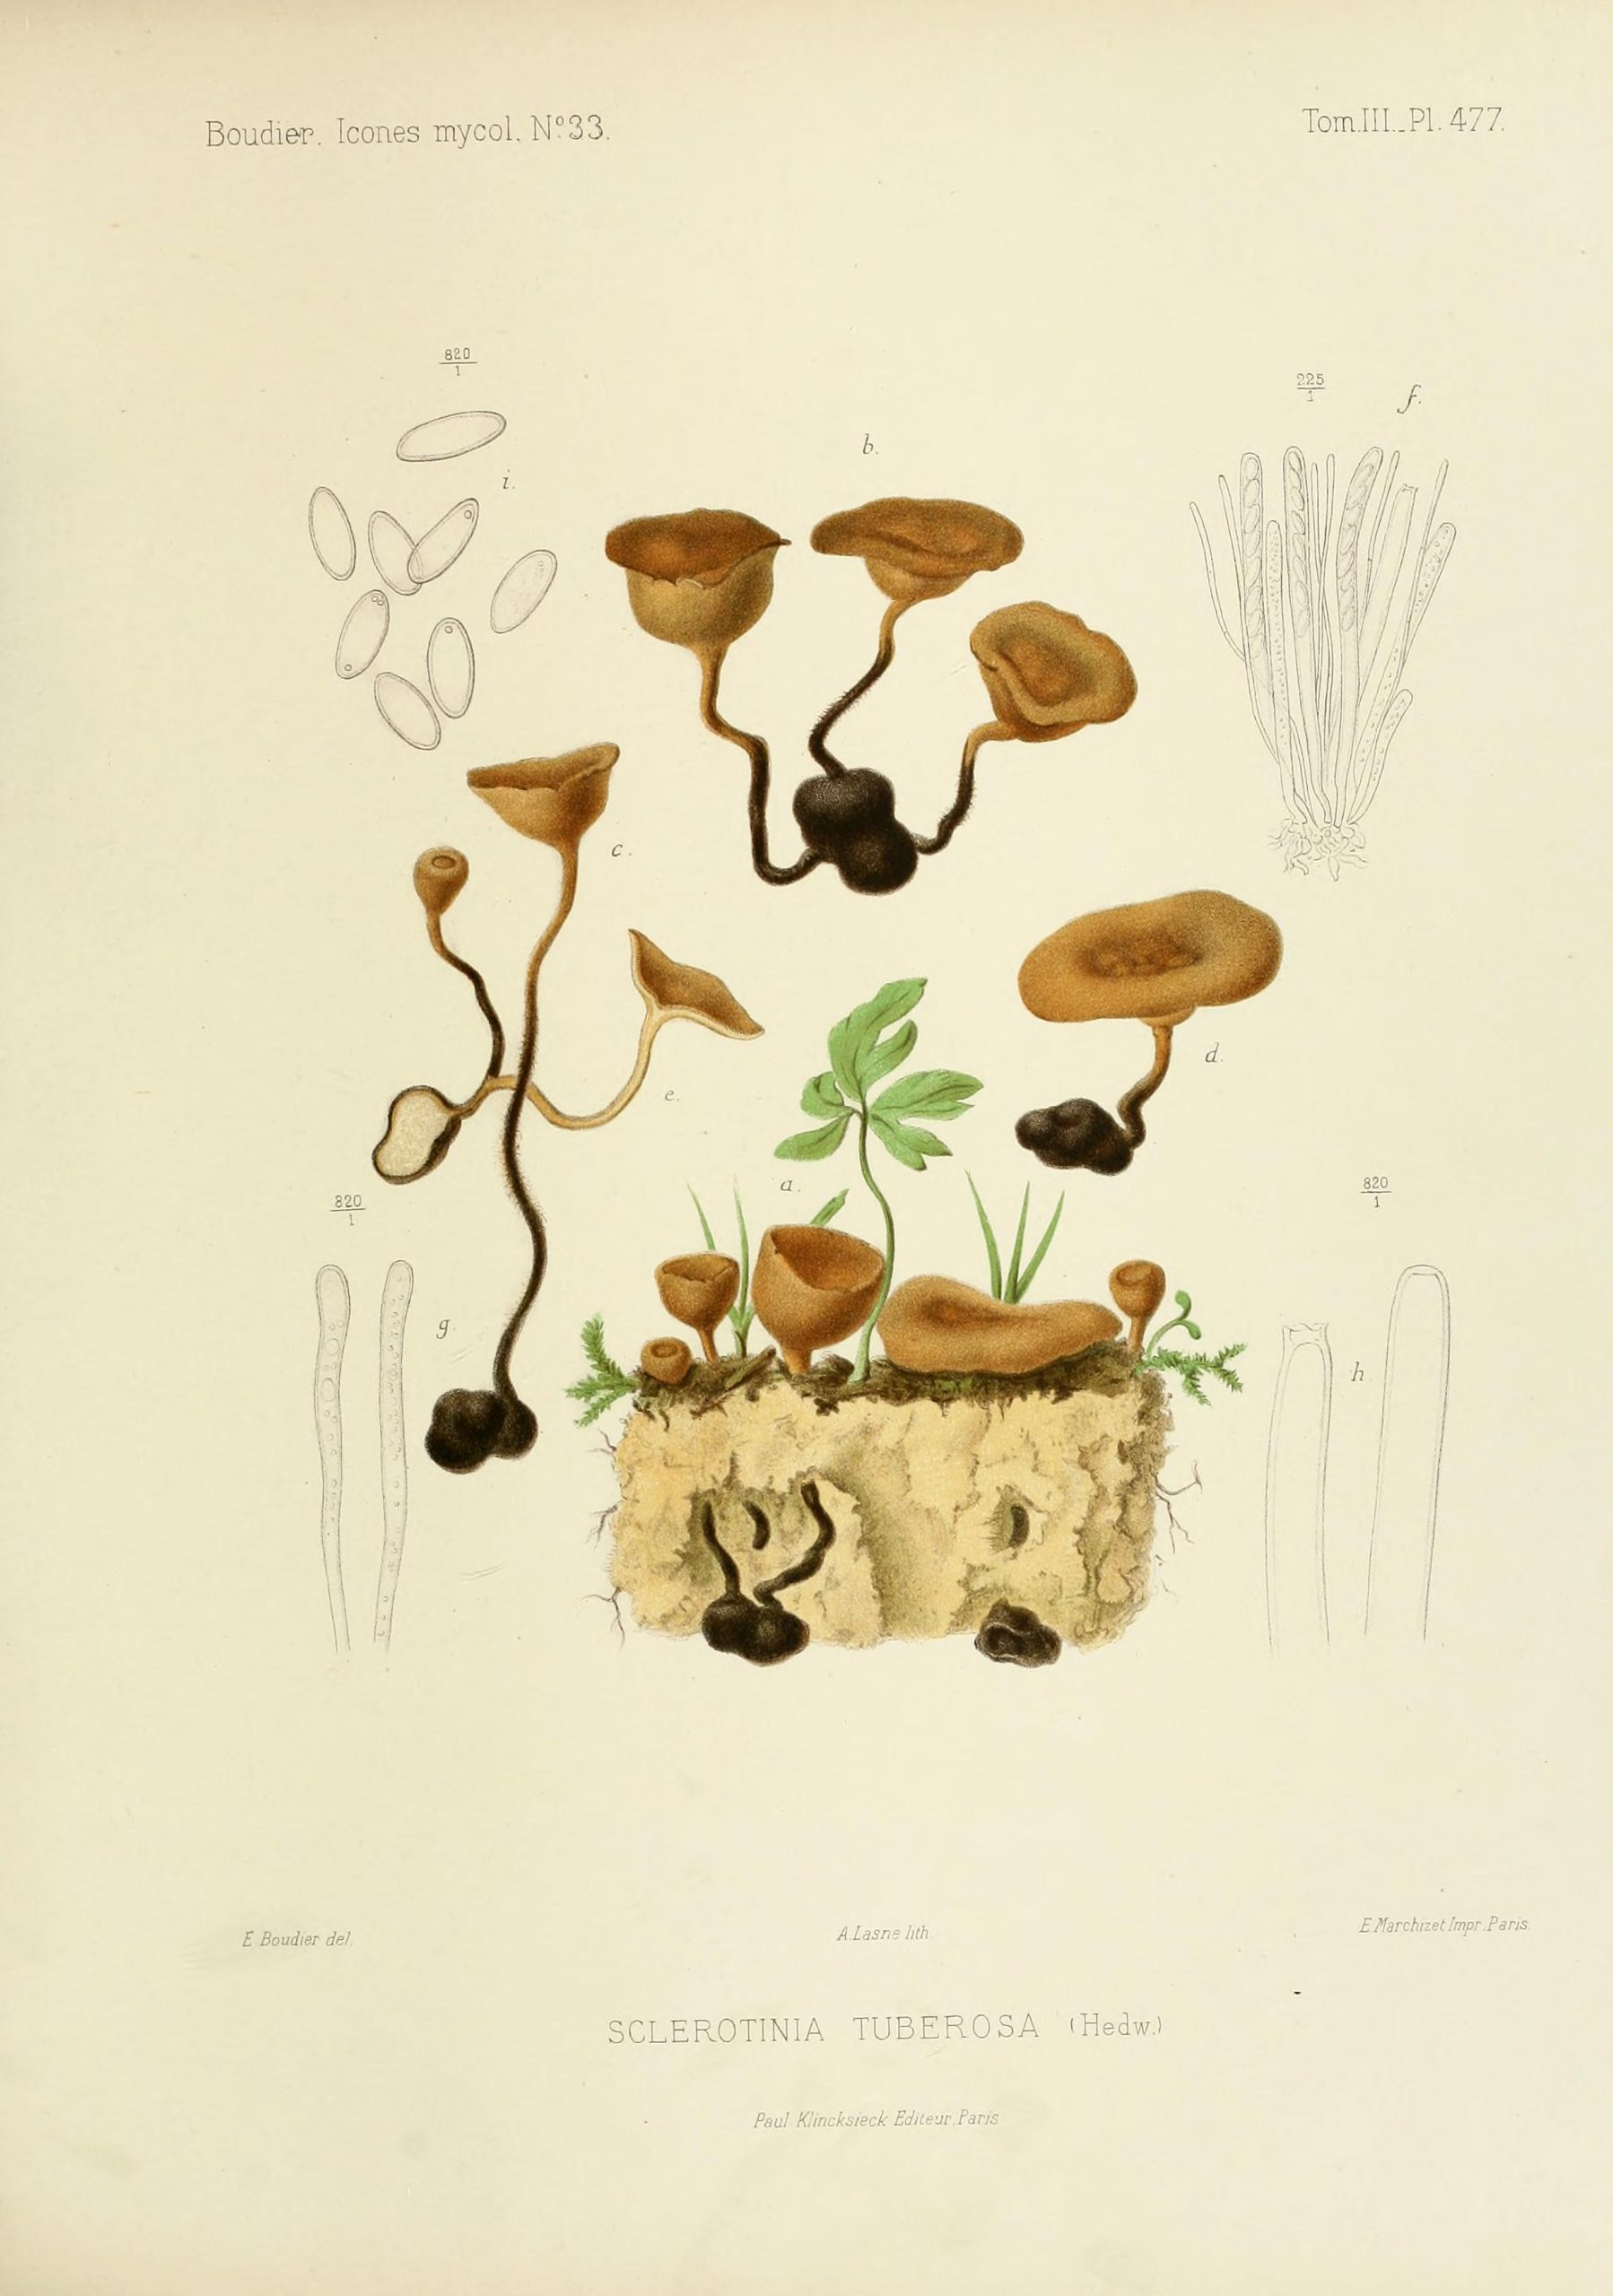 Illustration of fungi.